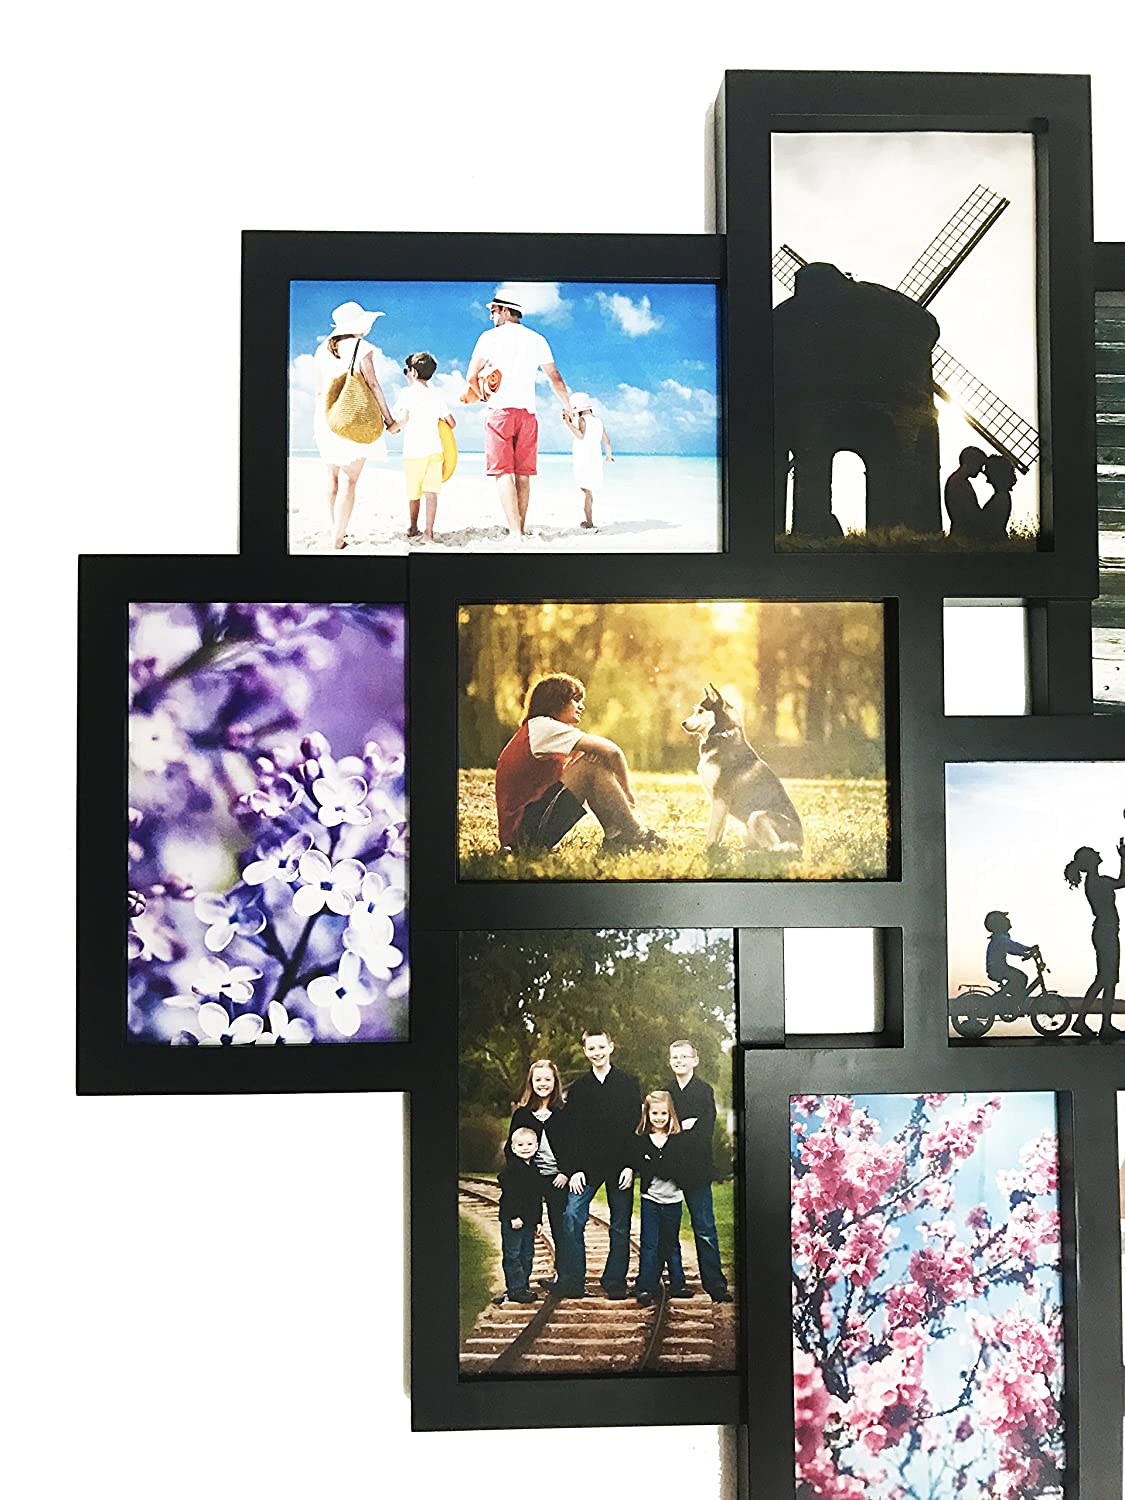 Amazon.com - BestBuy Frames Wall Hanging Large 10-Piece Multiple ...